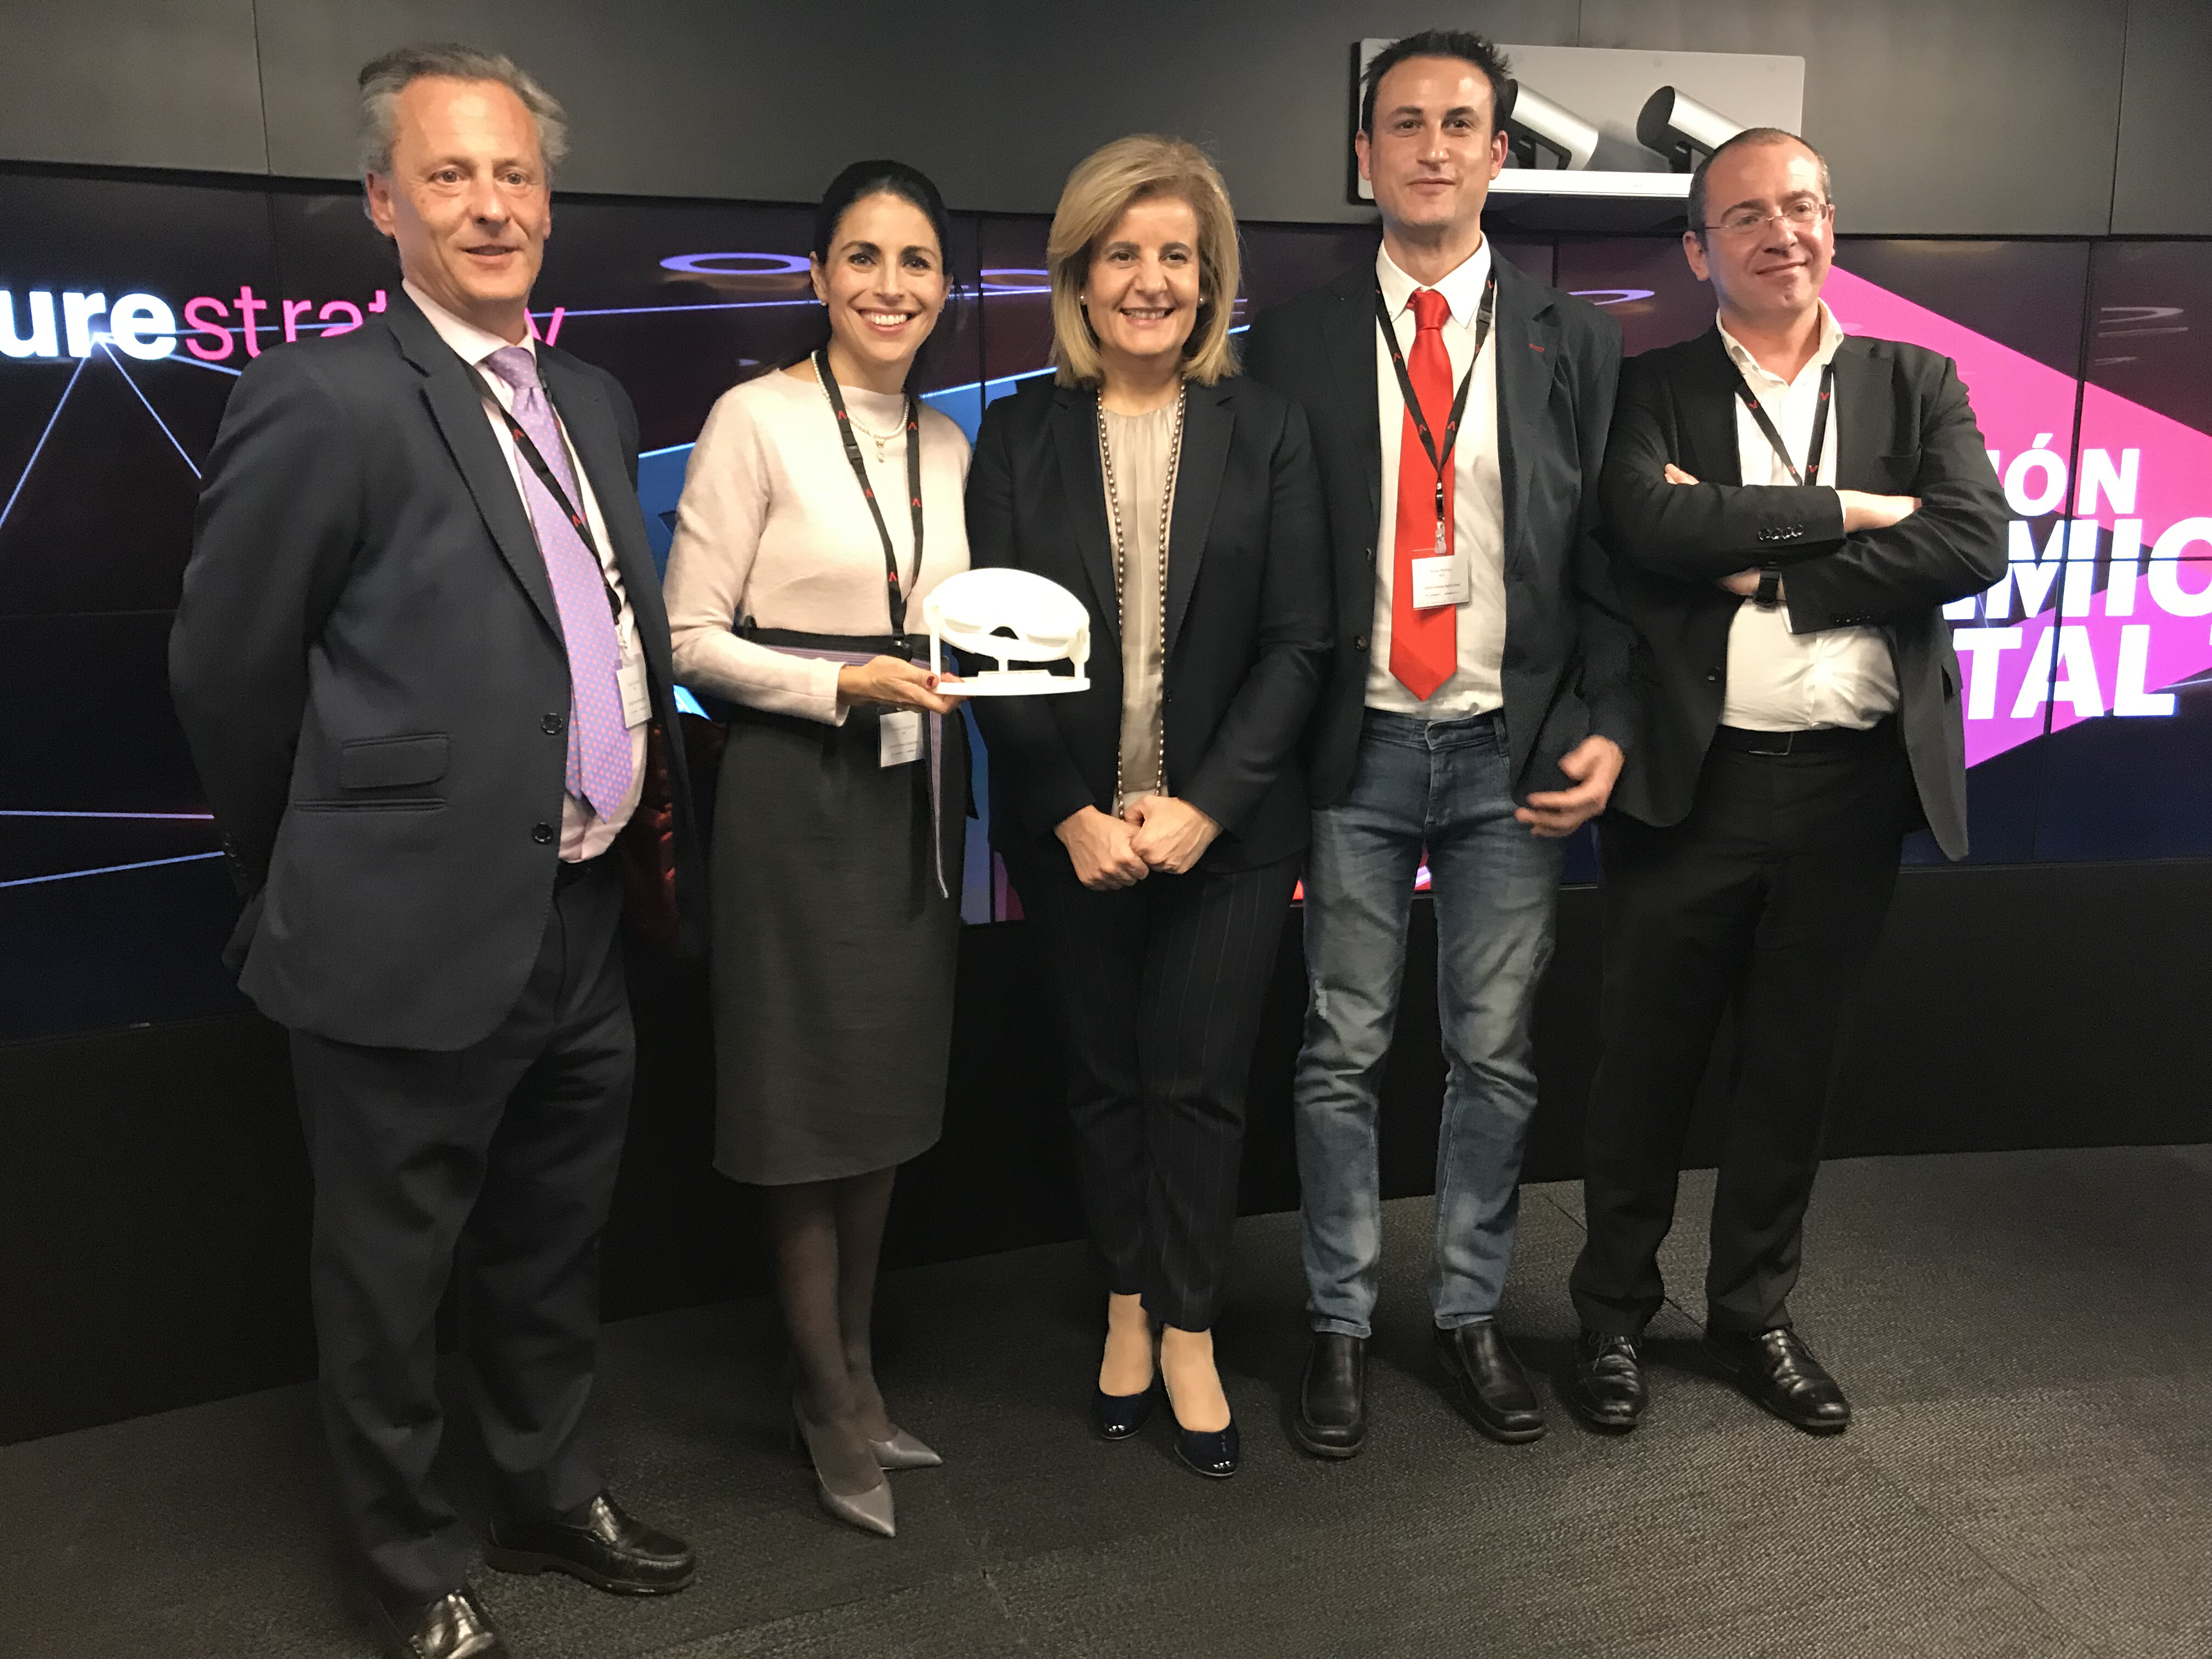 ASTI TechGroup recibe el Premio Digital Talent por su gestión del talento